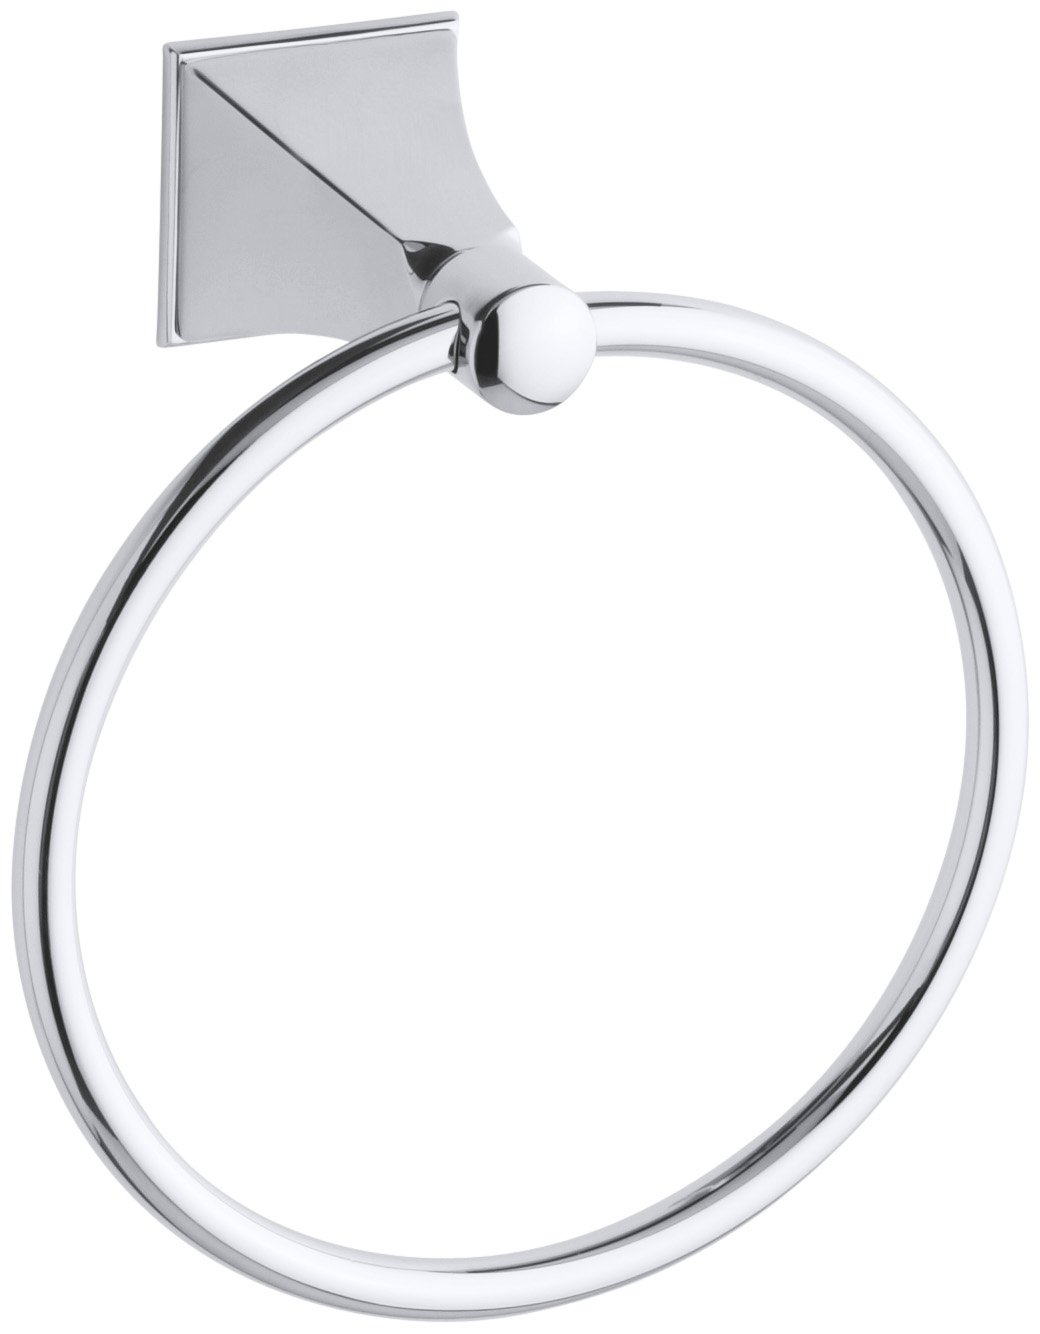 kohler k487cp memoirs towel ring with stately design polished chrome amazoncom - Kohler Memoirs